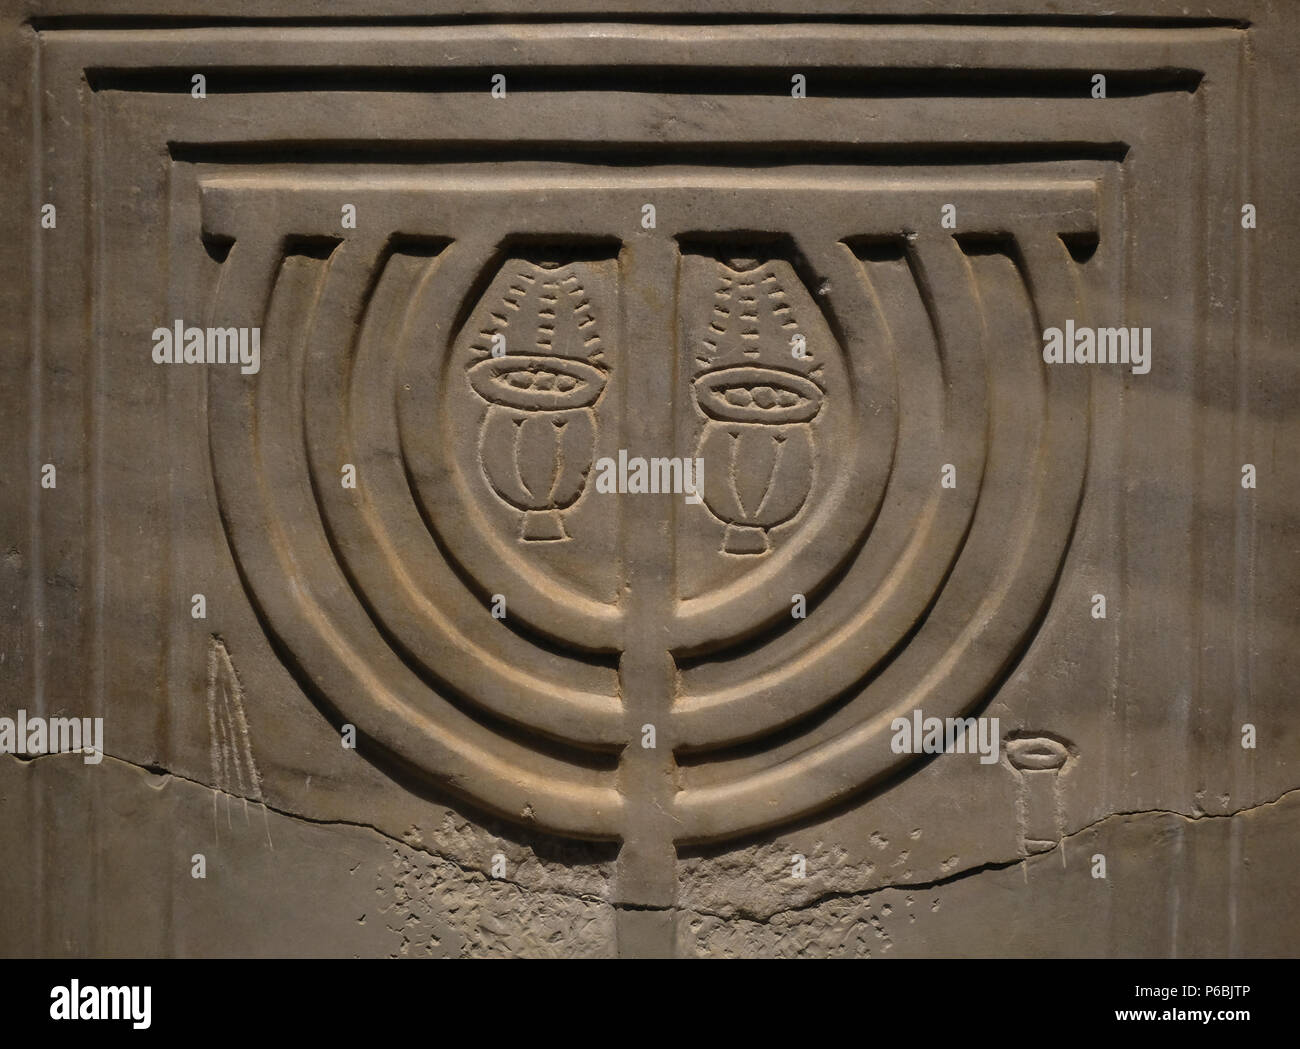 The Jewish Menorah carved in remain of the ancient synagogue (4-9th centuries CE) of Susya or Susiya archaeological site located in the southern Judea displayed at the Archeology Wing of the Israel Museum in West Jerusalem Israel - Stock Image